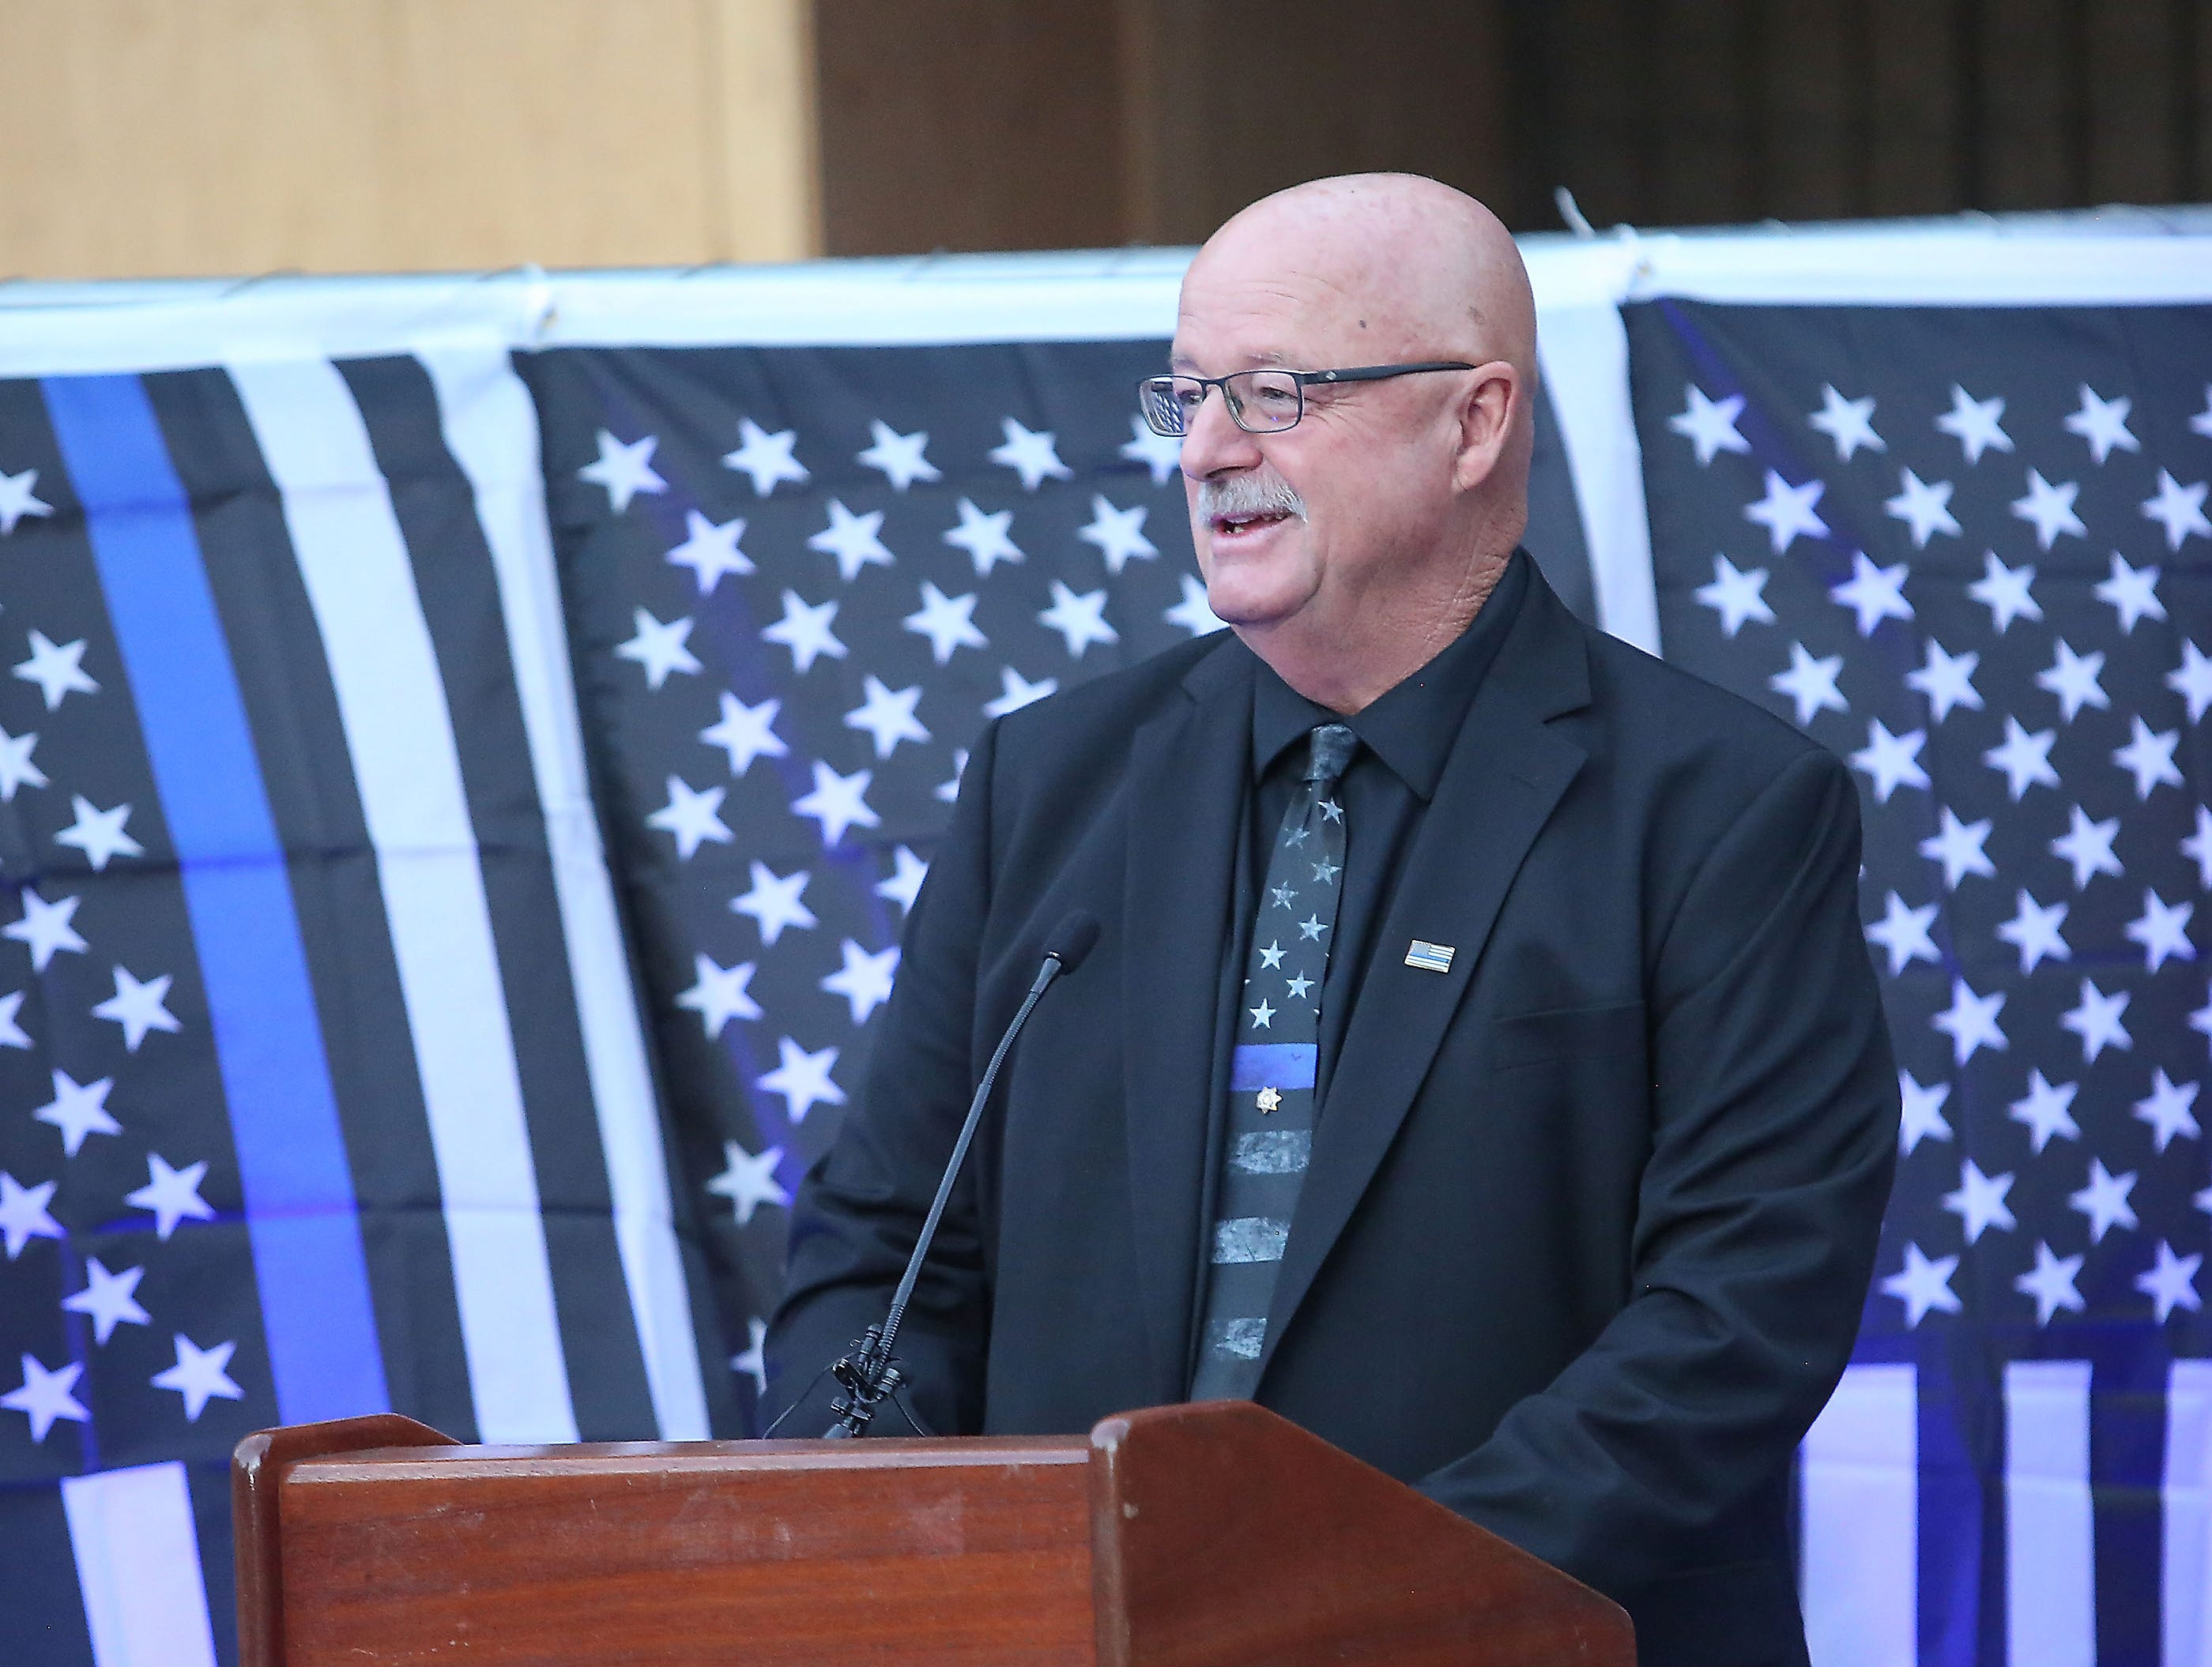 David Kling father of Lesley Zerebny speaks during a vigil at the Palm Springs Police Department commemorating the two-year anniversary of her passing, October 8, 2018.